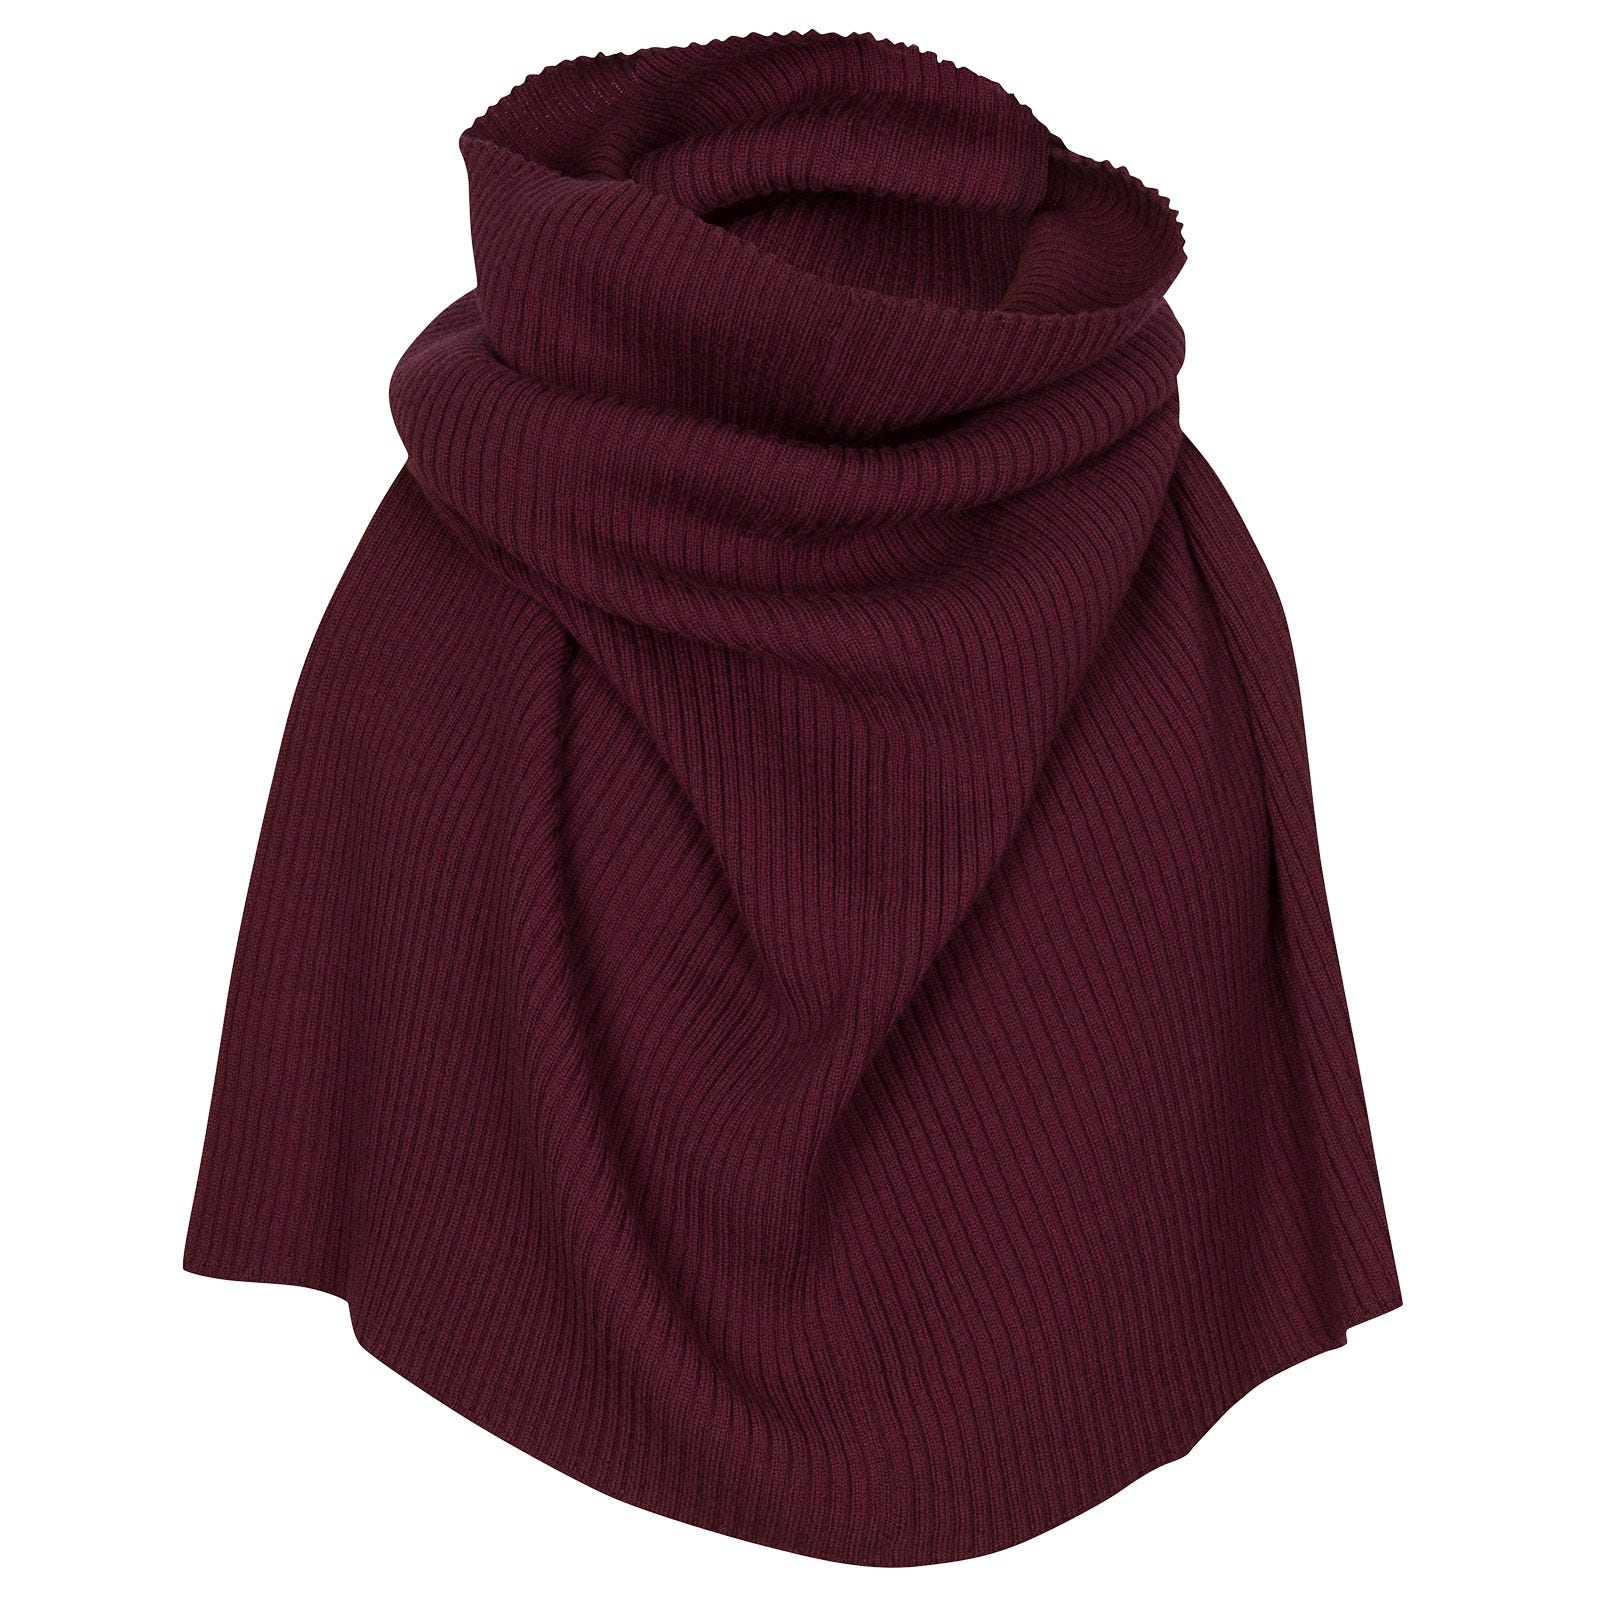 John Smedley Marta Merino Wool Snood in Bordeaux-ONE